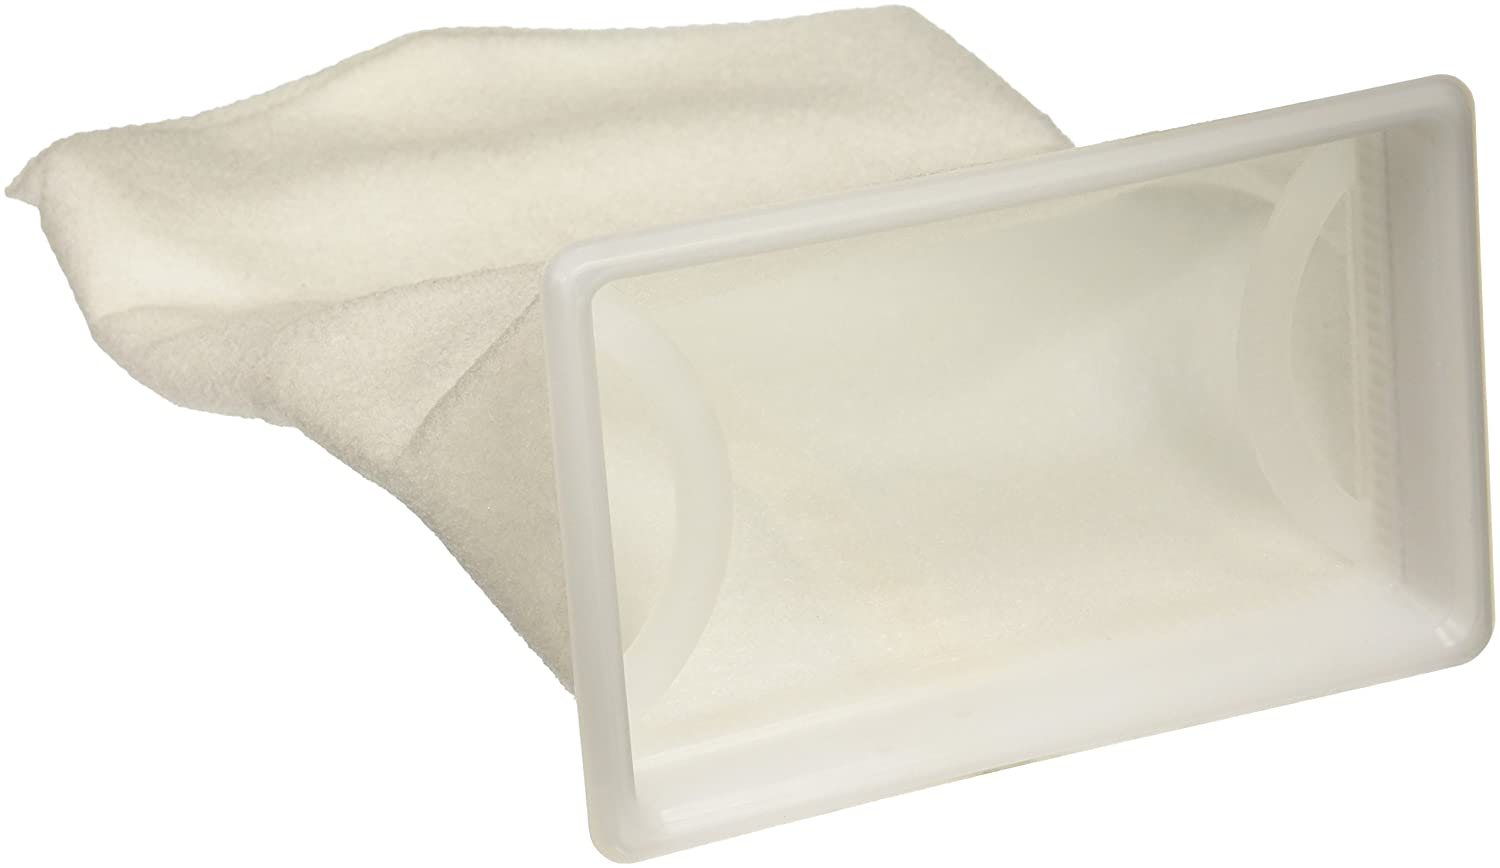 19048 Eshopps 7 Rectangle Micron Bag Package 3-in-1 29871